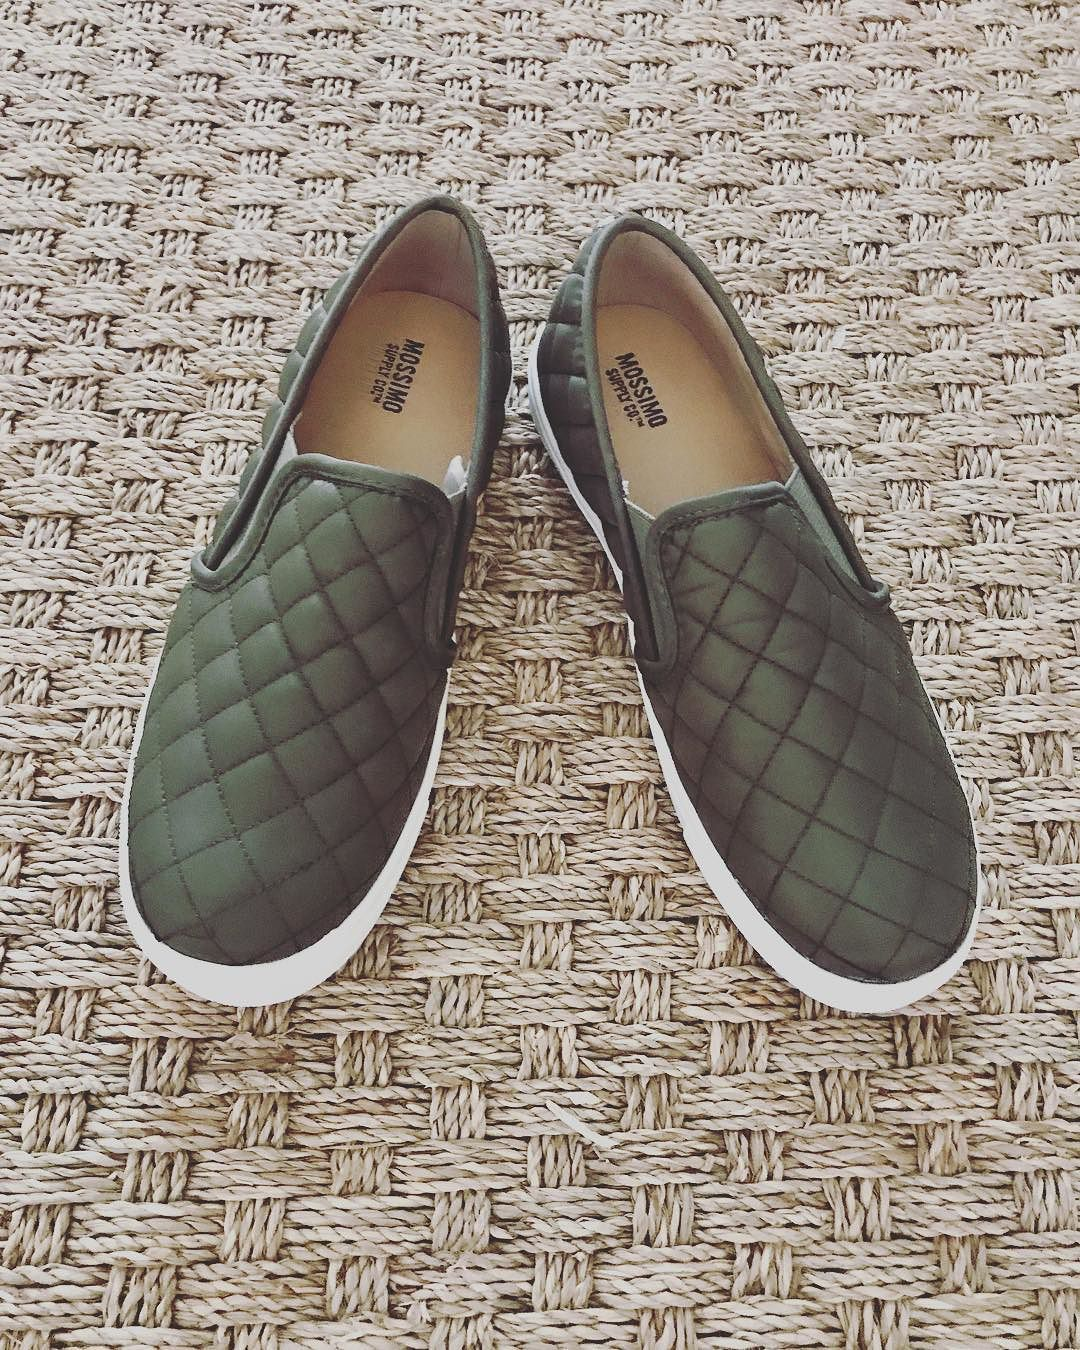 25c1c71f7e94 ... Women s Reese Slip On Sneakers Mossimo Supply Co.! see all your loves ·  instagram photo by BETH • MURRAY - Boston